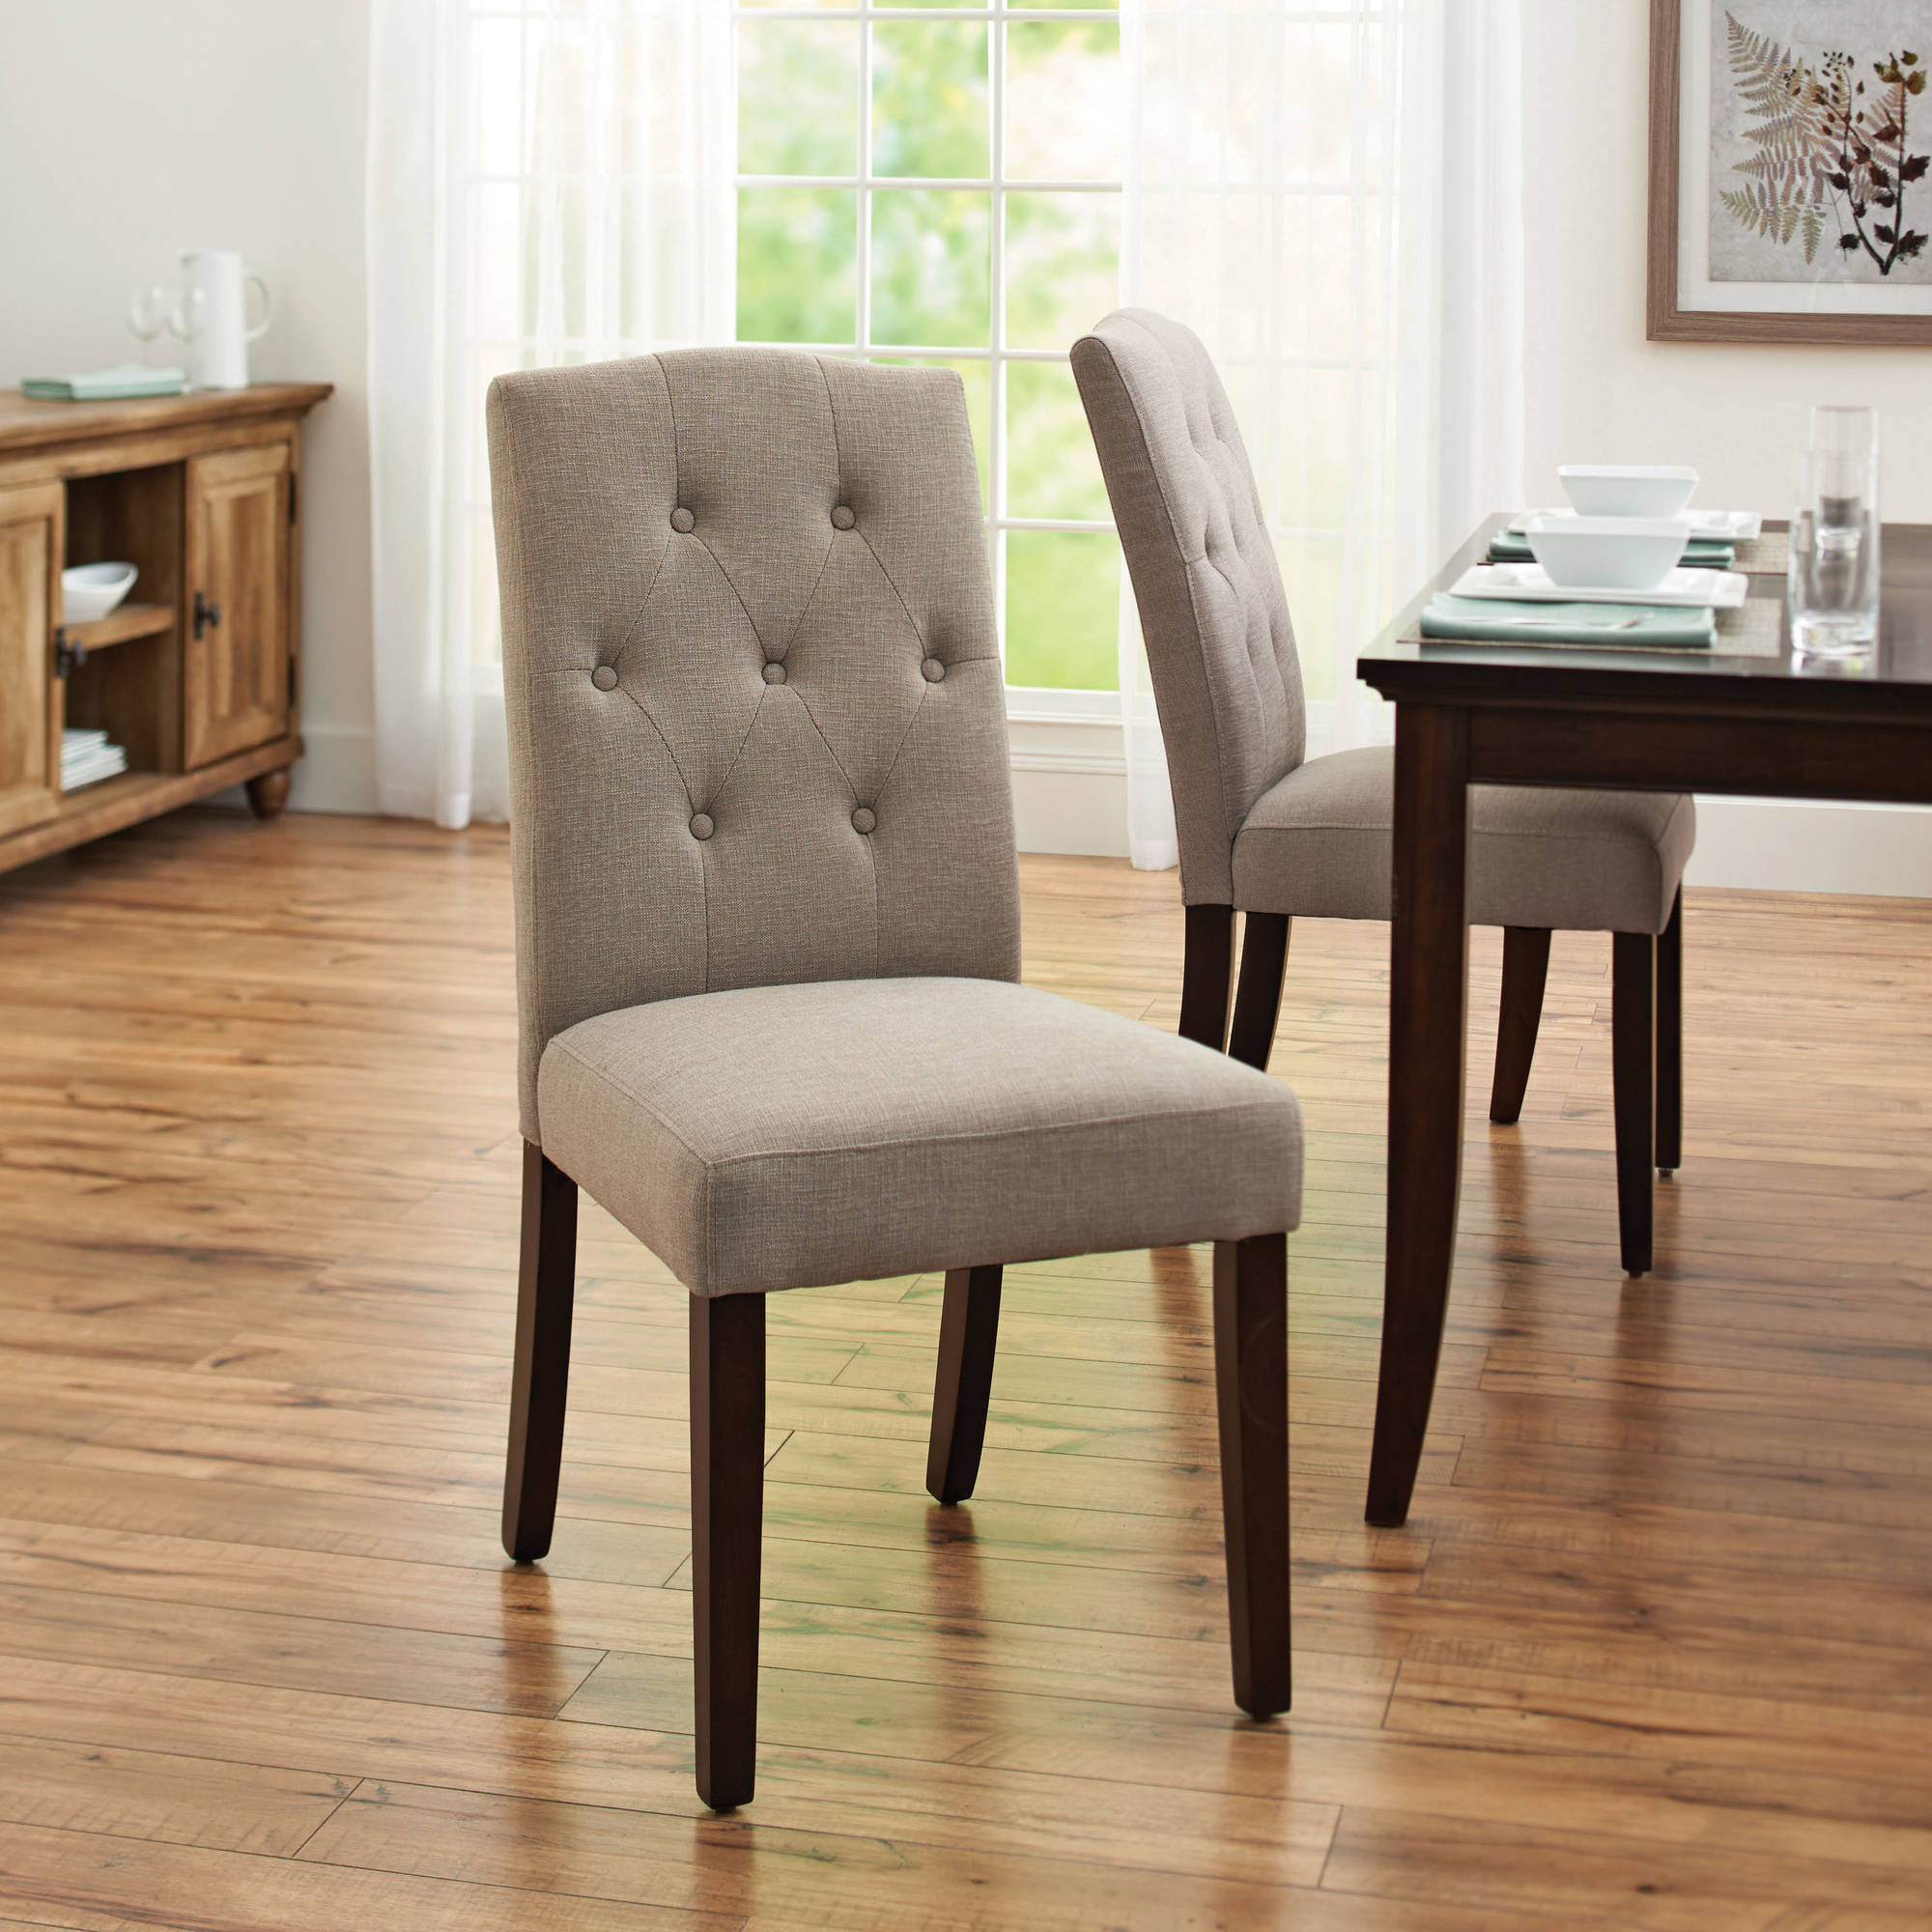 Unique Better Homes and Gardens Parsons Tufted Dining Chair, Taupe - Walmart.com parsons dining chairs